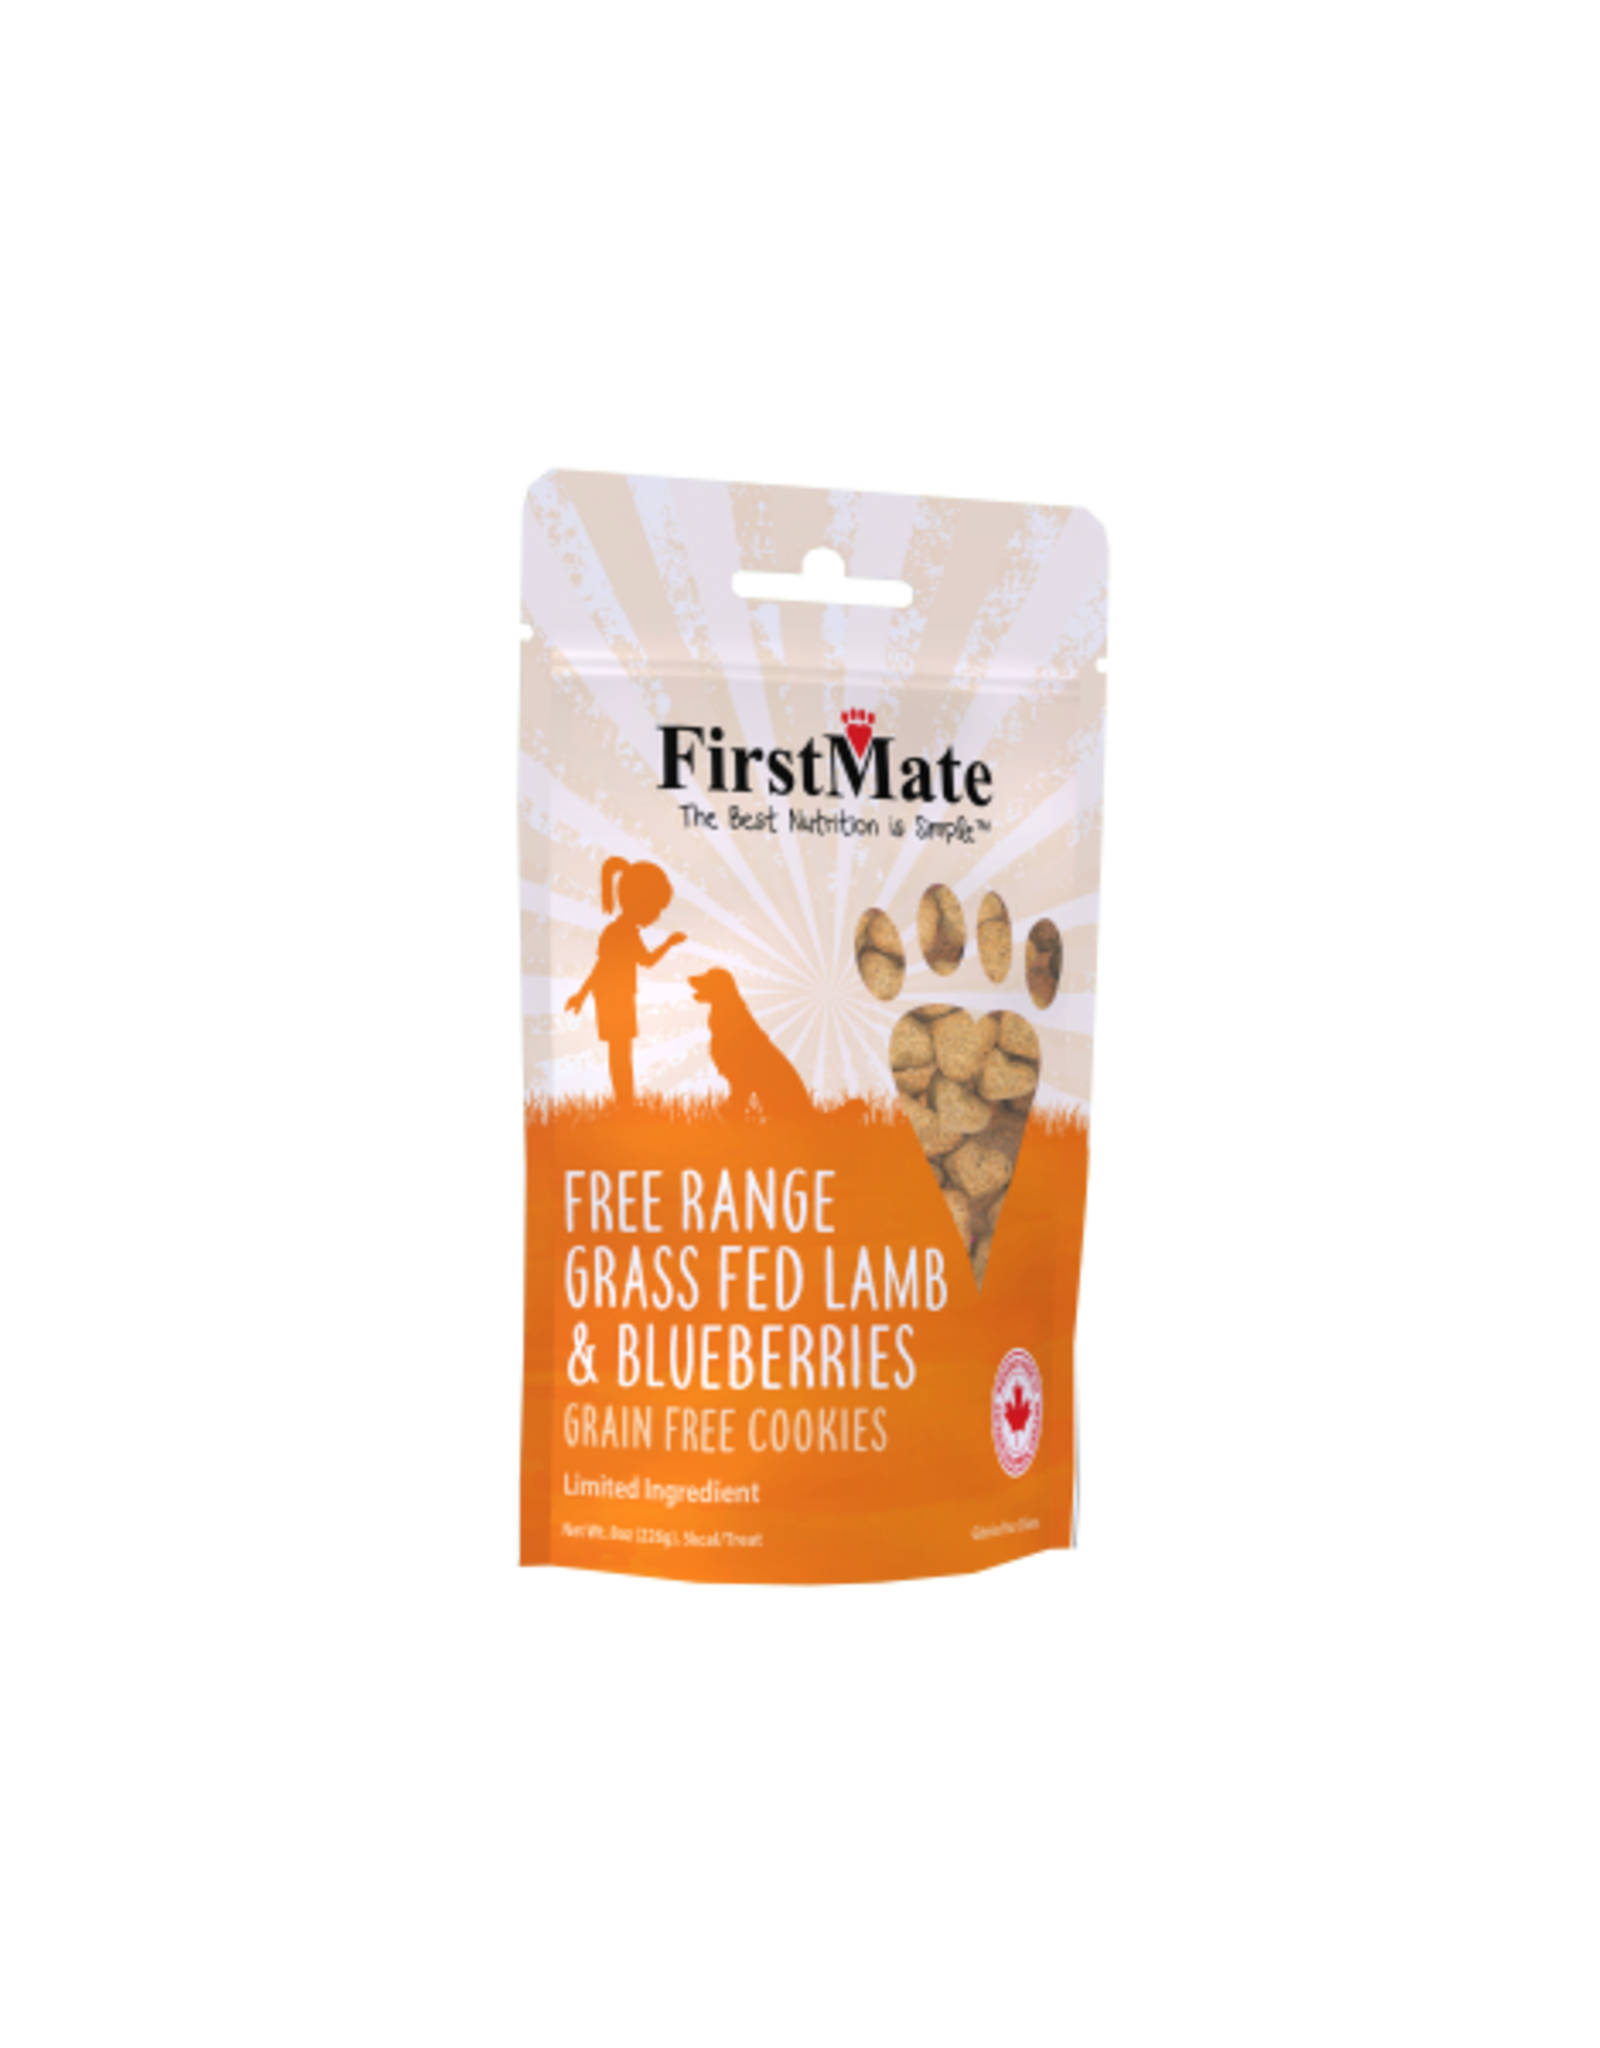 First Mate FirstMate Dog LID GF FRange Lamb/Blueberries Cookies 8 oz